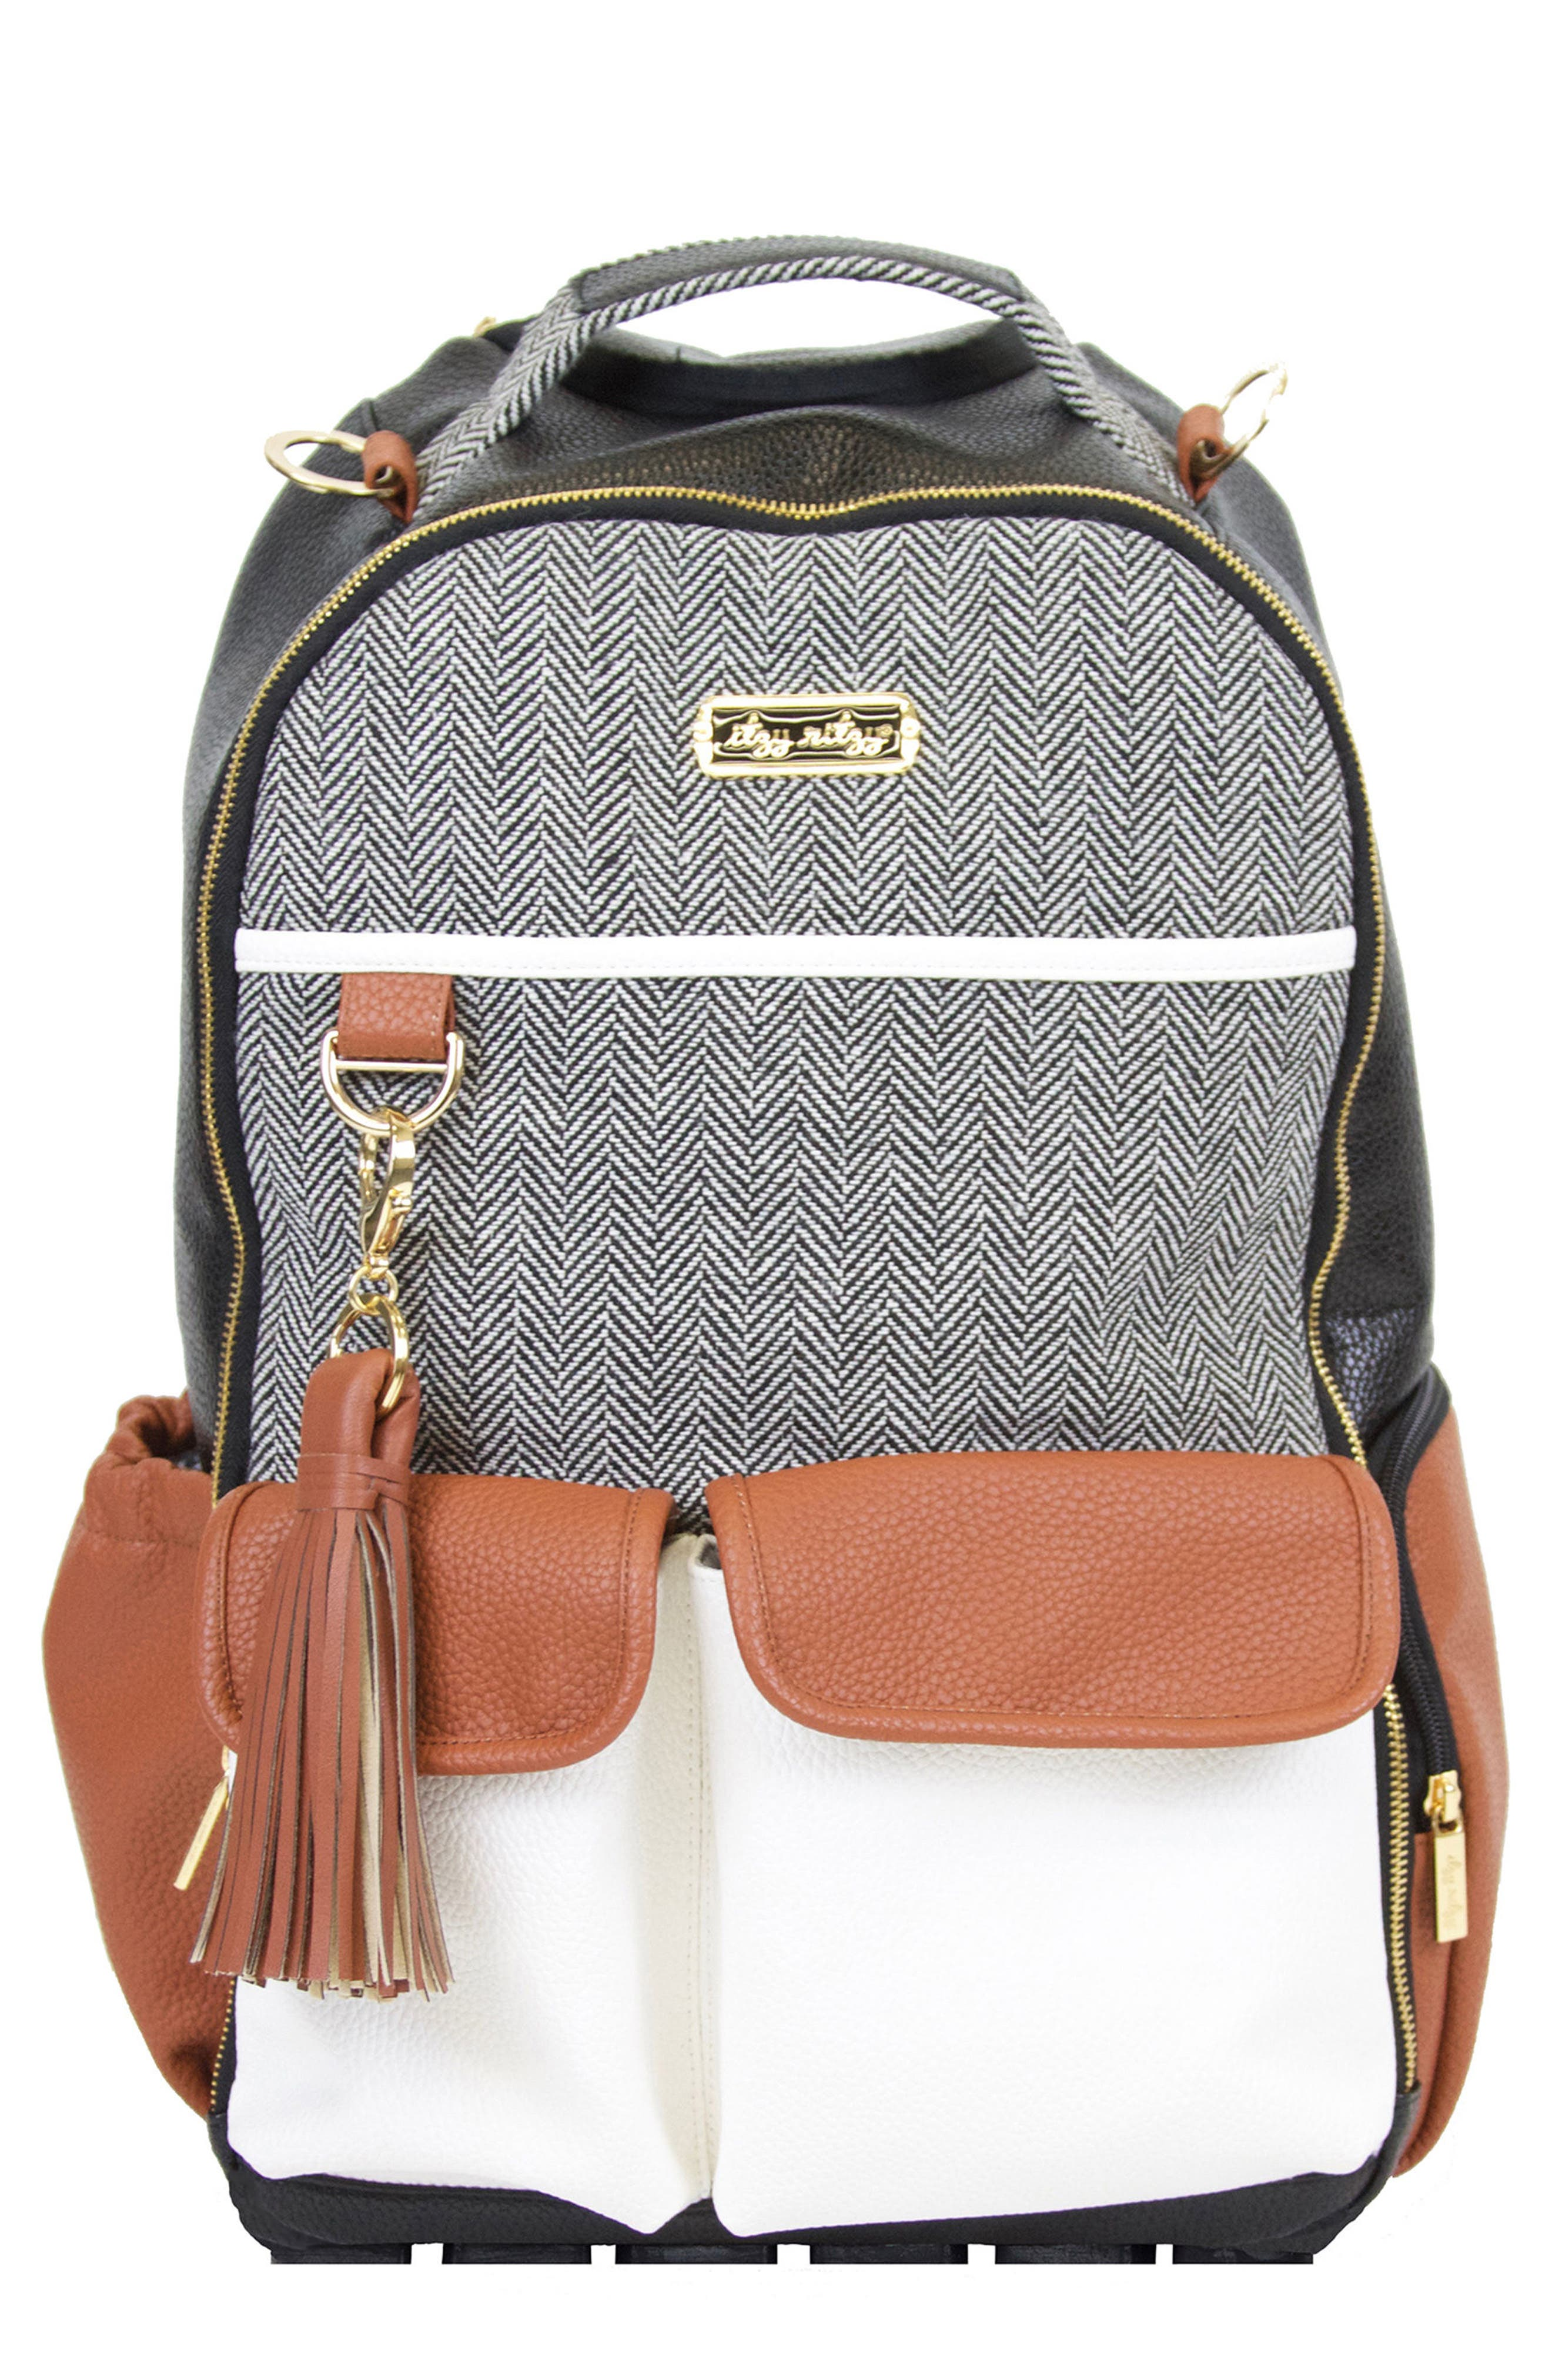 Main Image - Itzy Ritzy Diaper Bag Backpack